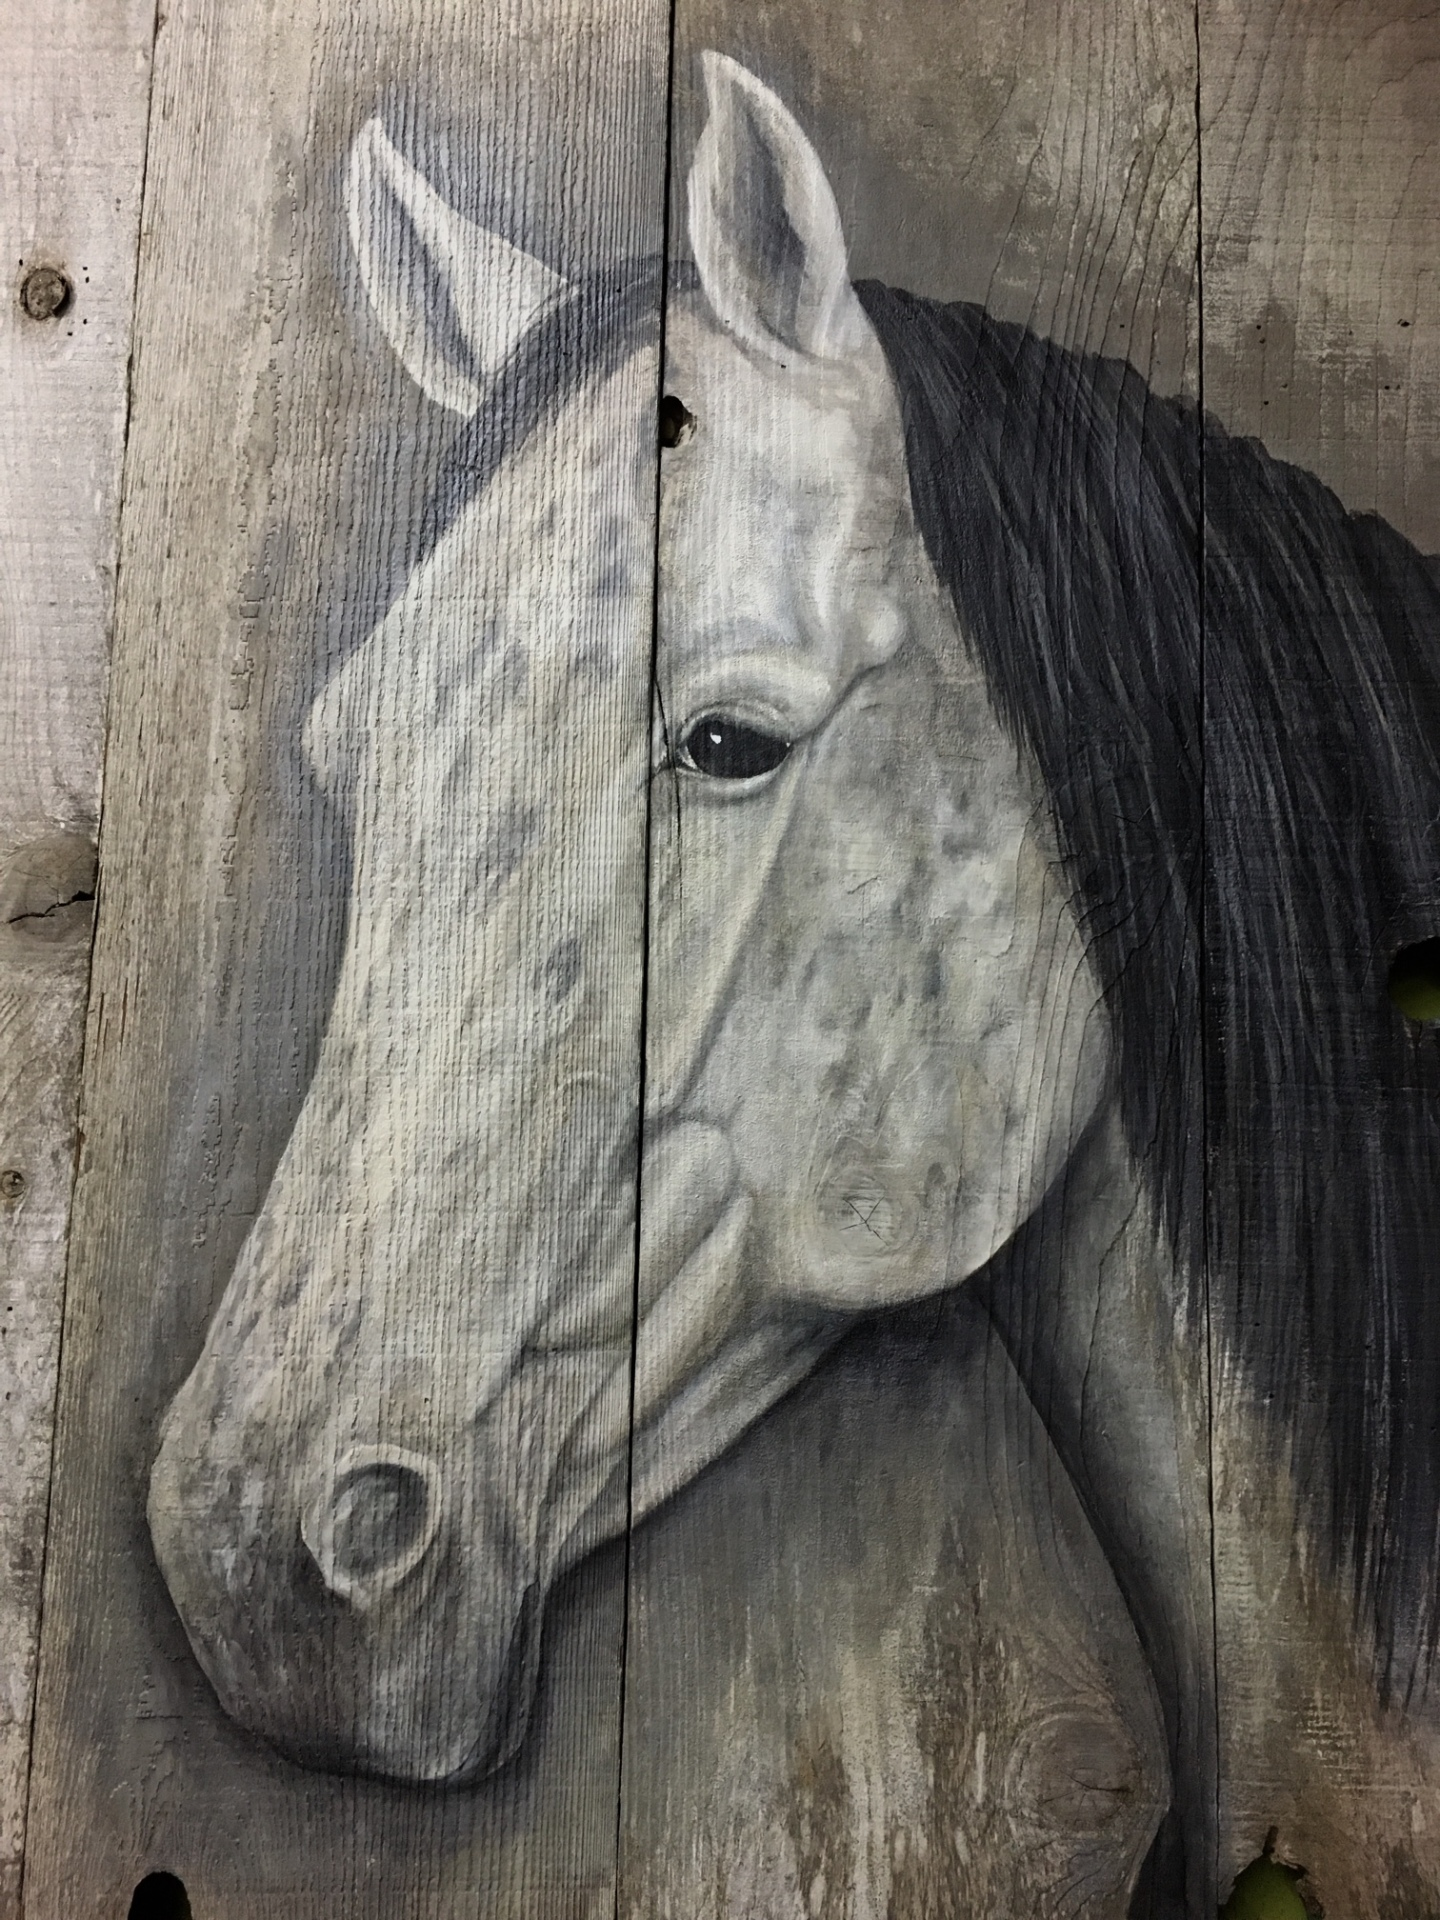 Horse painting commission, working with designers in Carmel, Rusty Croft